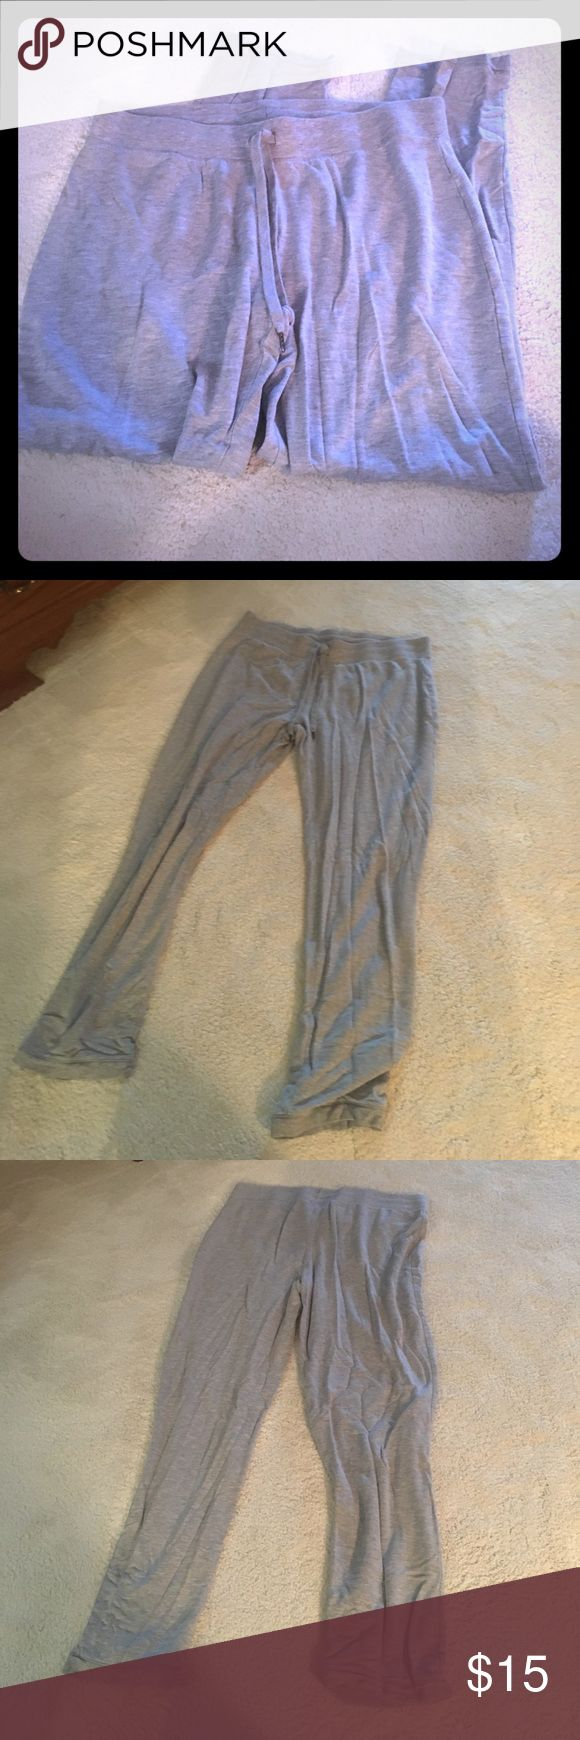 Gap Body ultra soft women's joggers Light weight, size L, no pilling GAP Pants Track Pants & Joggers